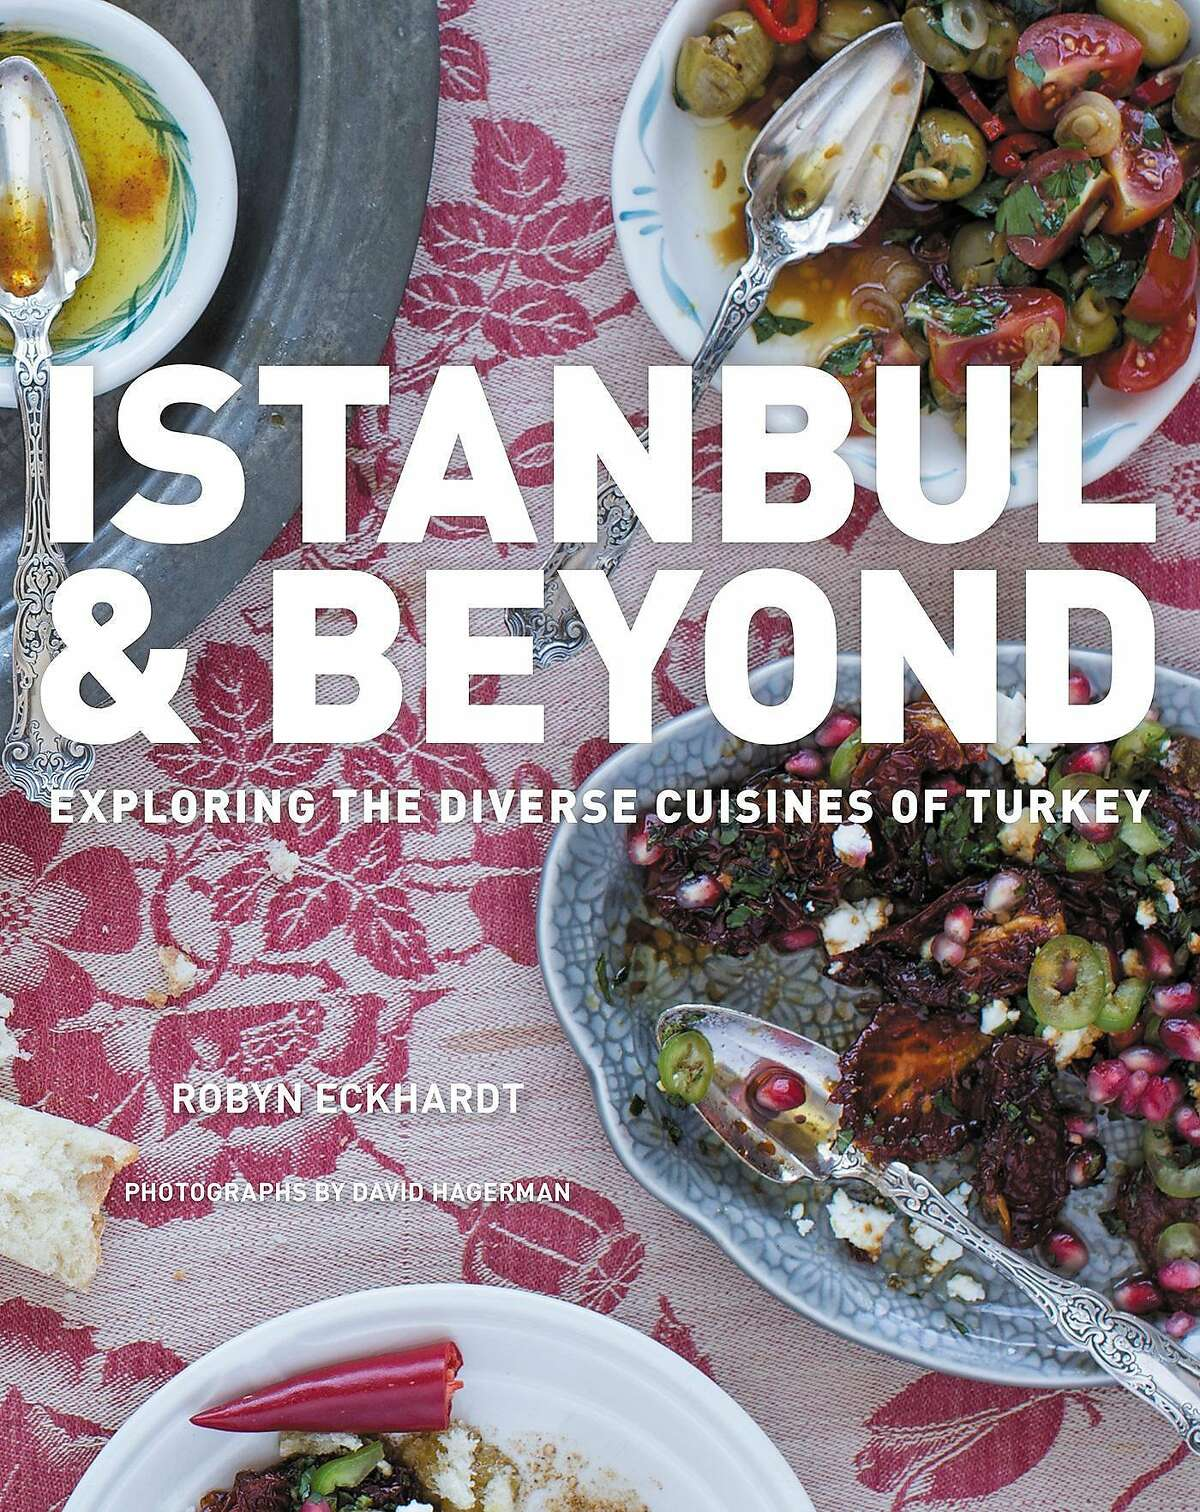 �Istanbul & Beyond: Exploring the Diverse Cuisines of Turkey� by Robyn Eckhardt (Houghton Mifflin Harcourt; 352 pages; $35)